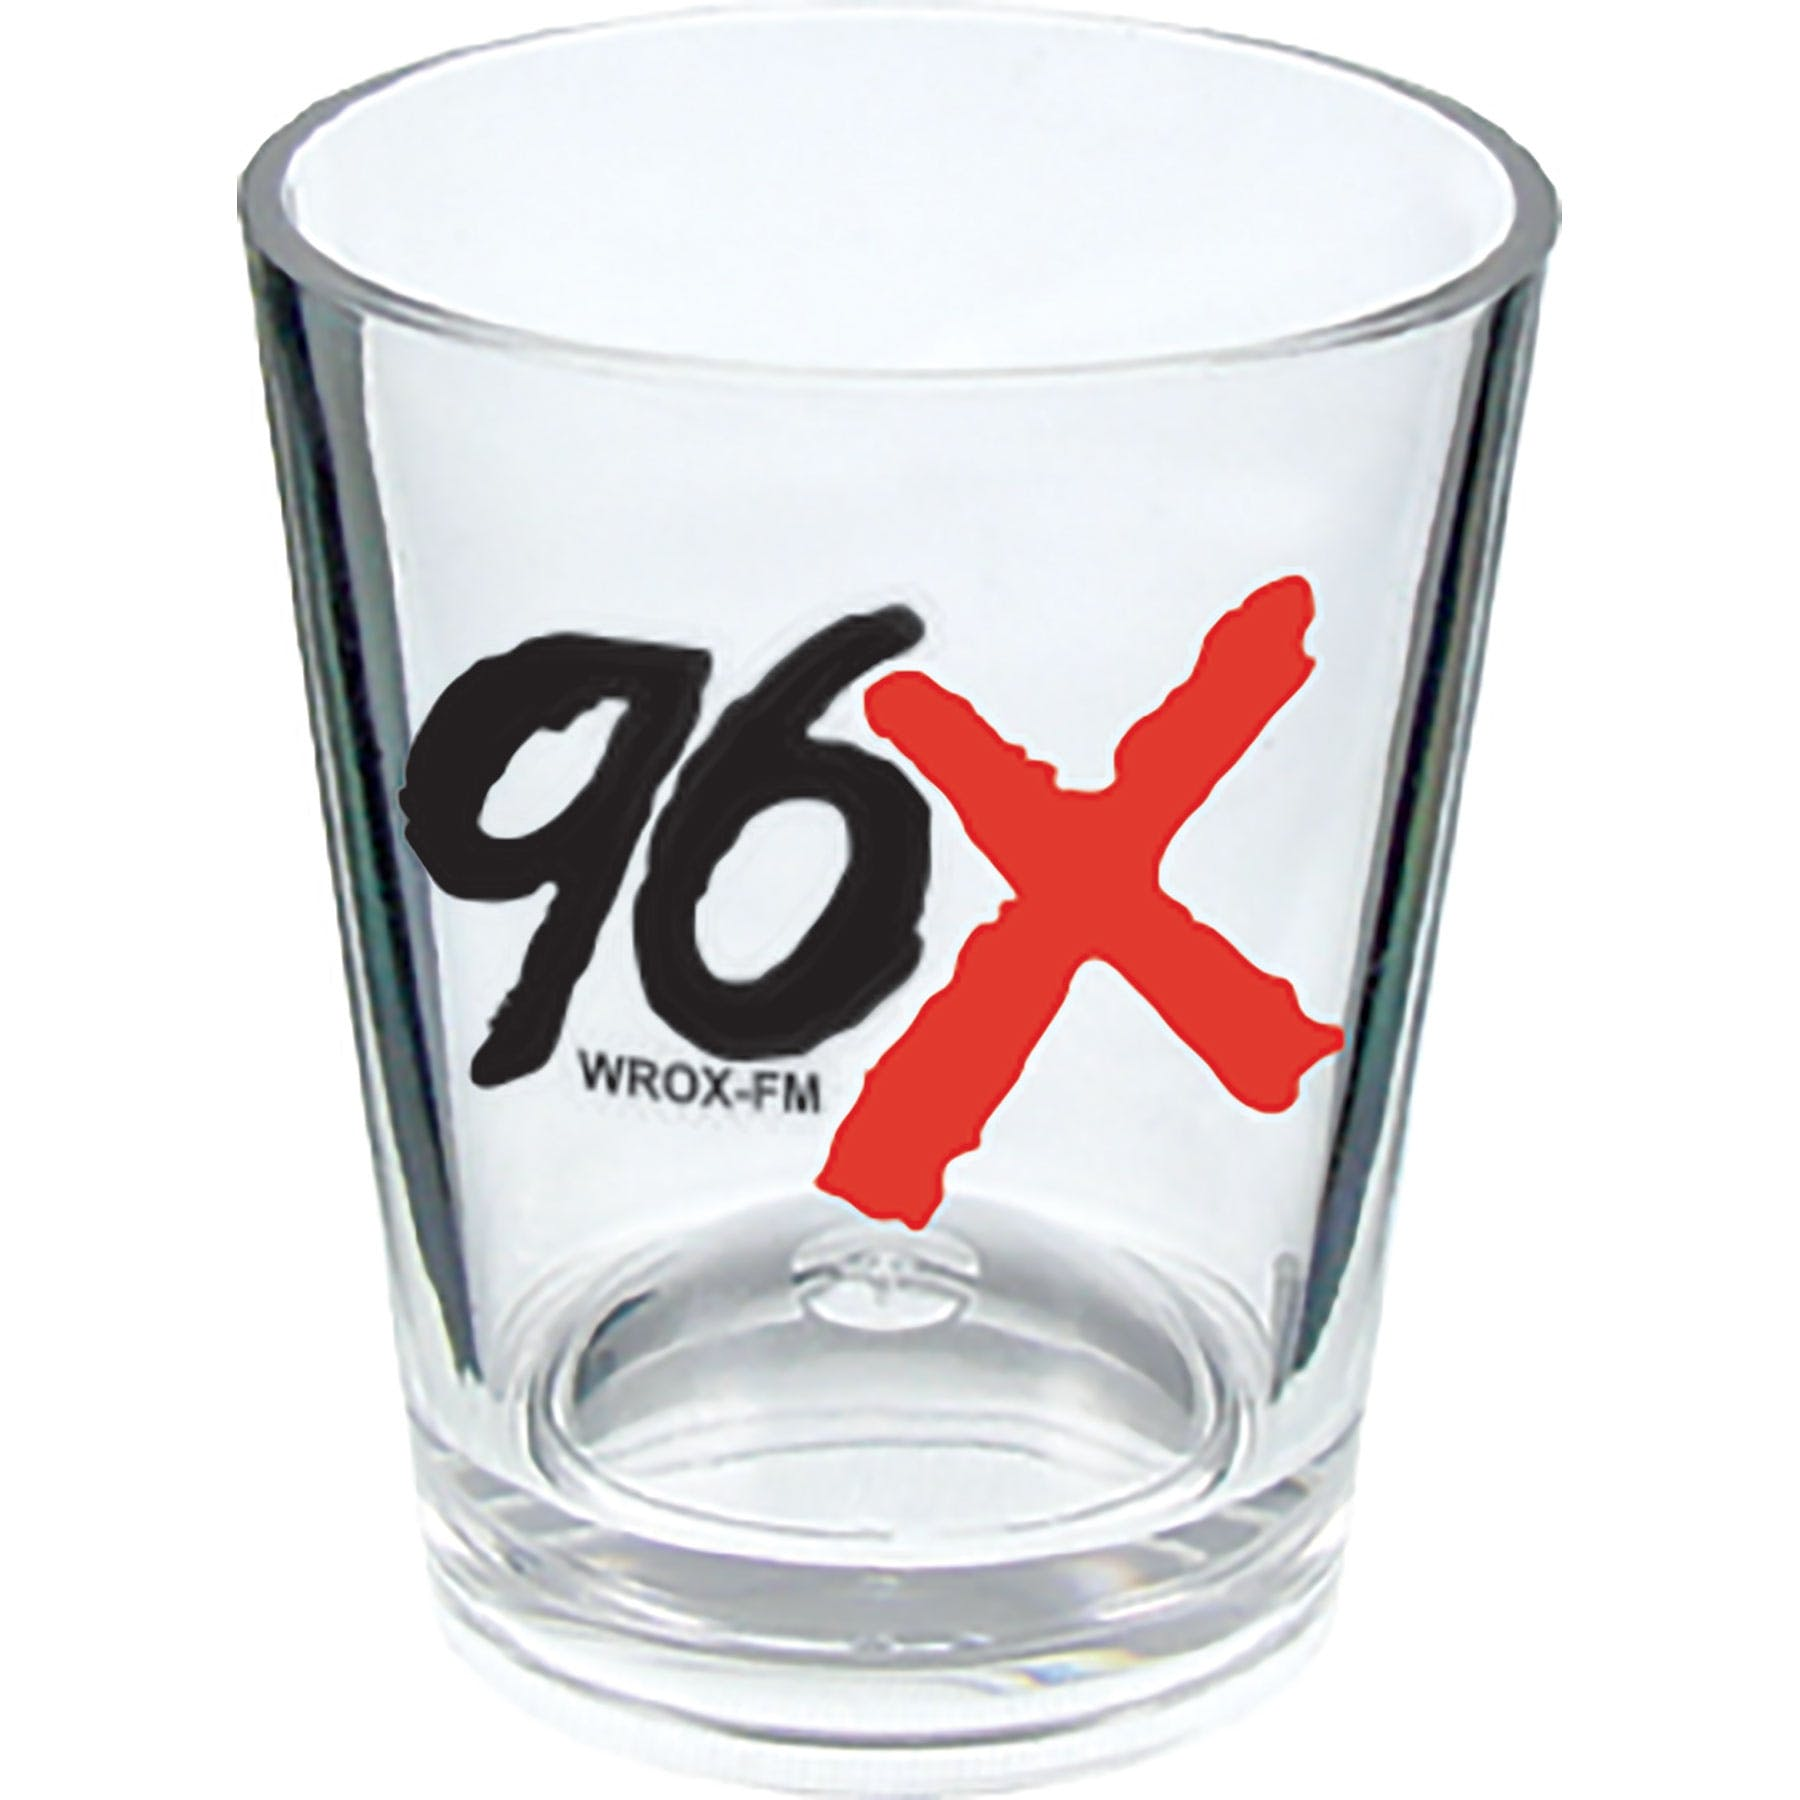 1.25 Oz. Shot Glass (Item # SALQU-DLIBL) Shot glass sold by InkEasy